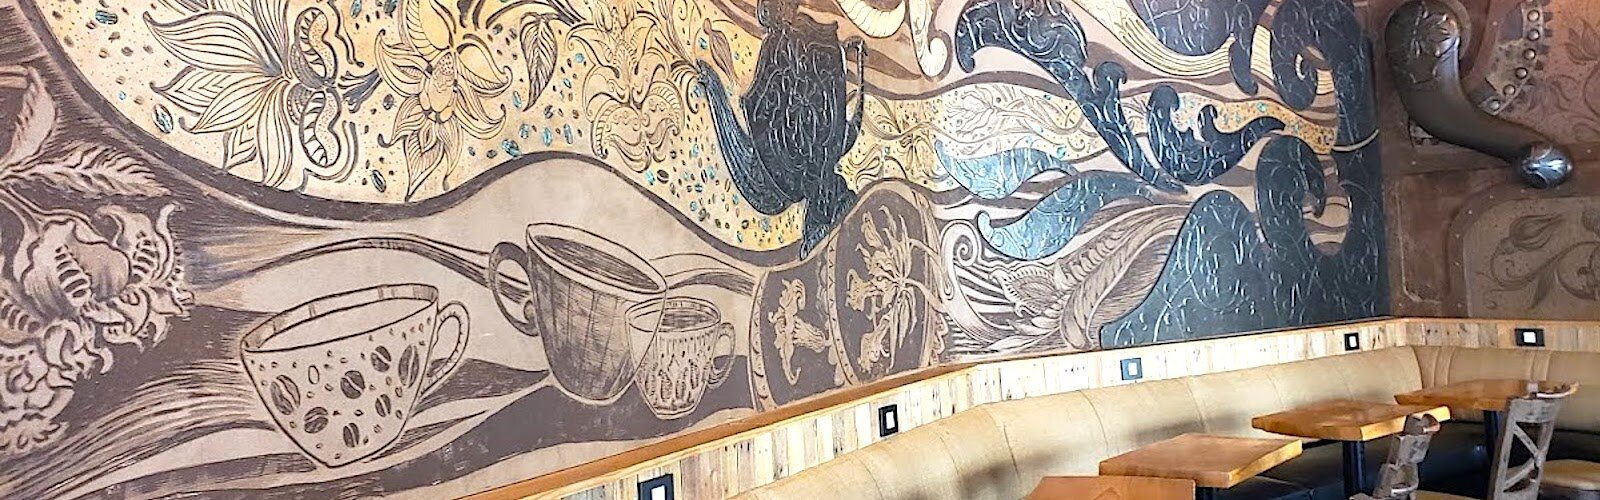 Funky murals on the walls of Grindhouse set the atmosphere for sipping coffee and sharing stories.